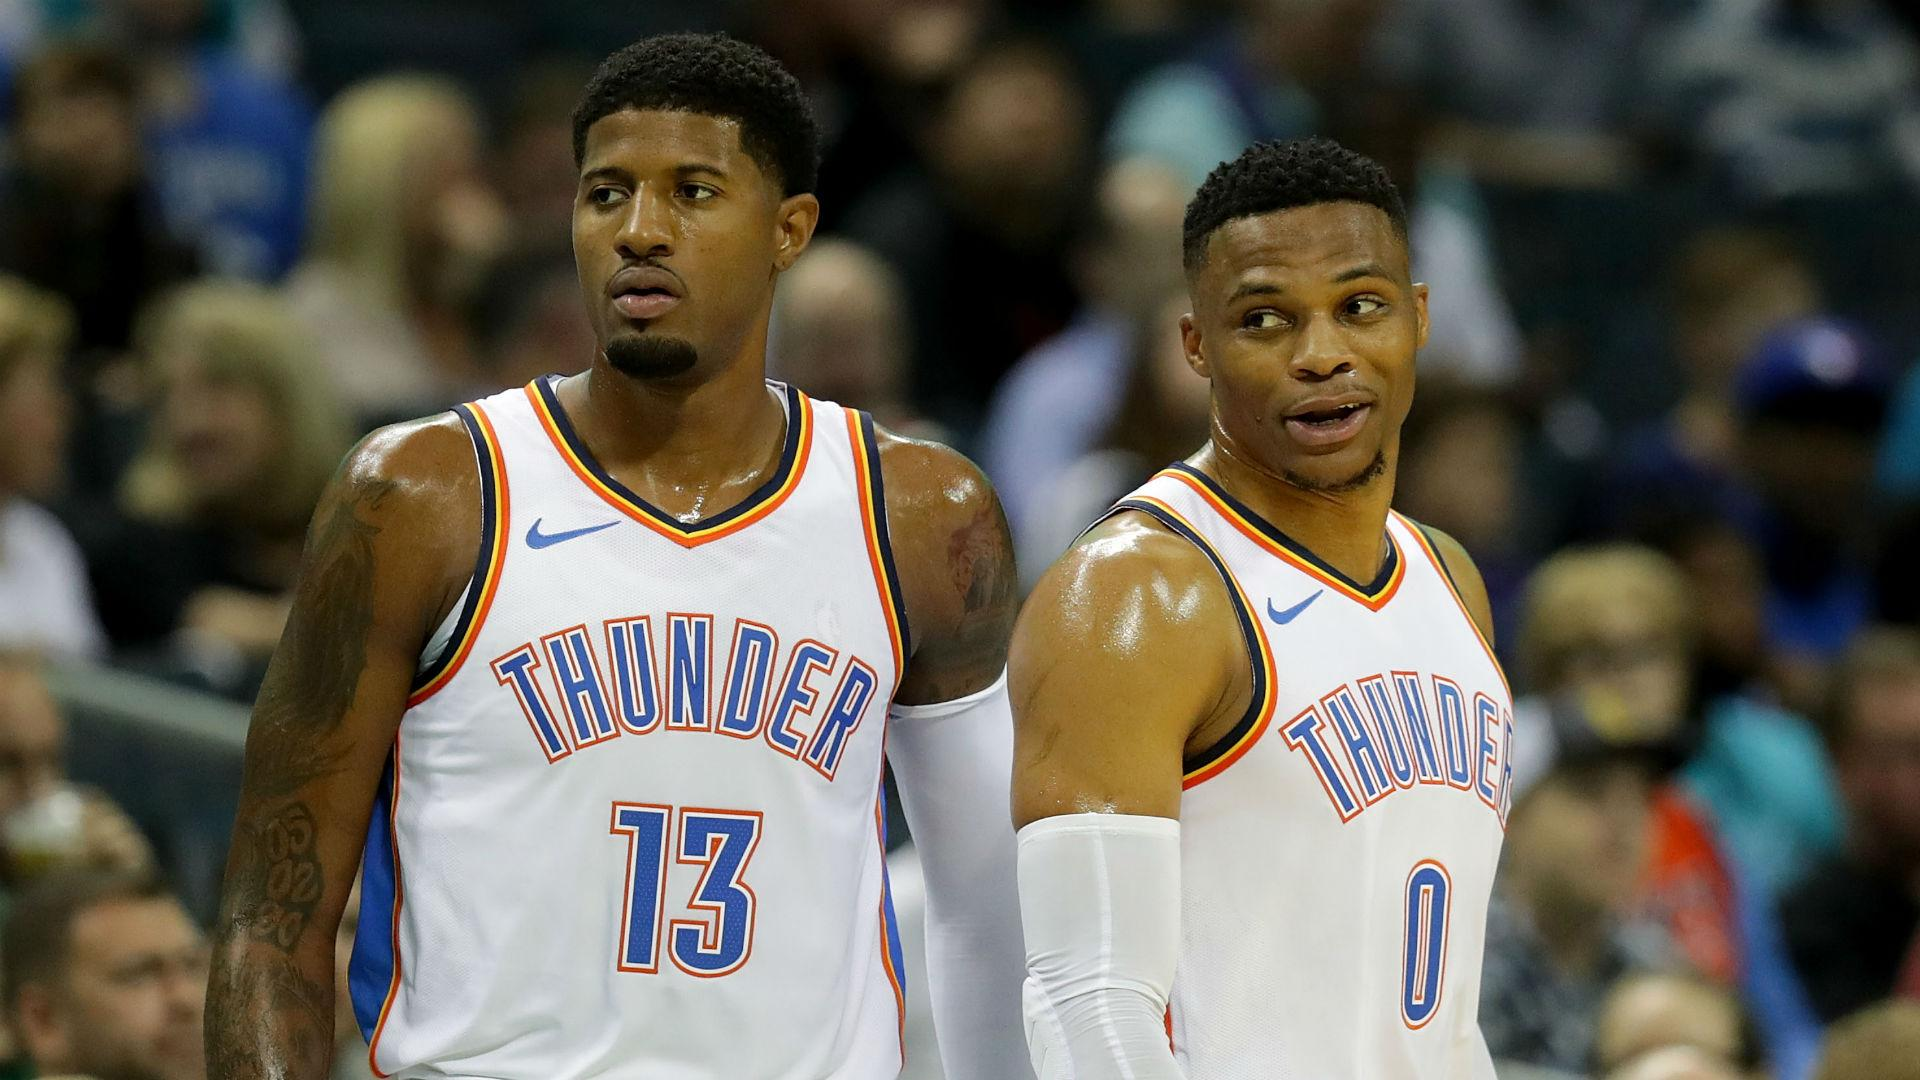 Thunder S First Round Draft Picks After Trading Russell